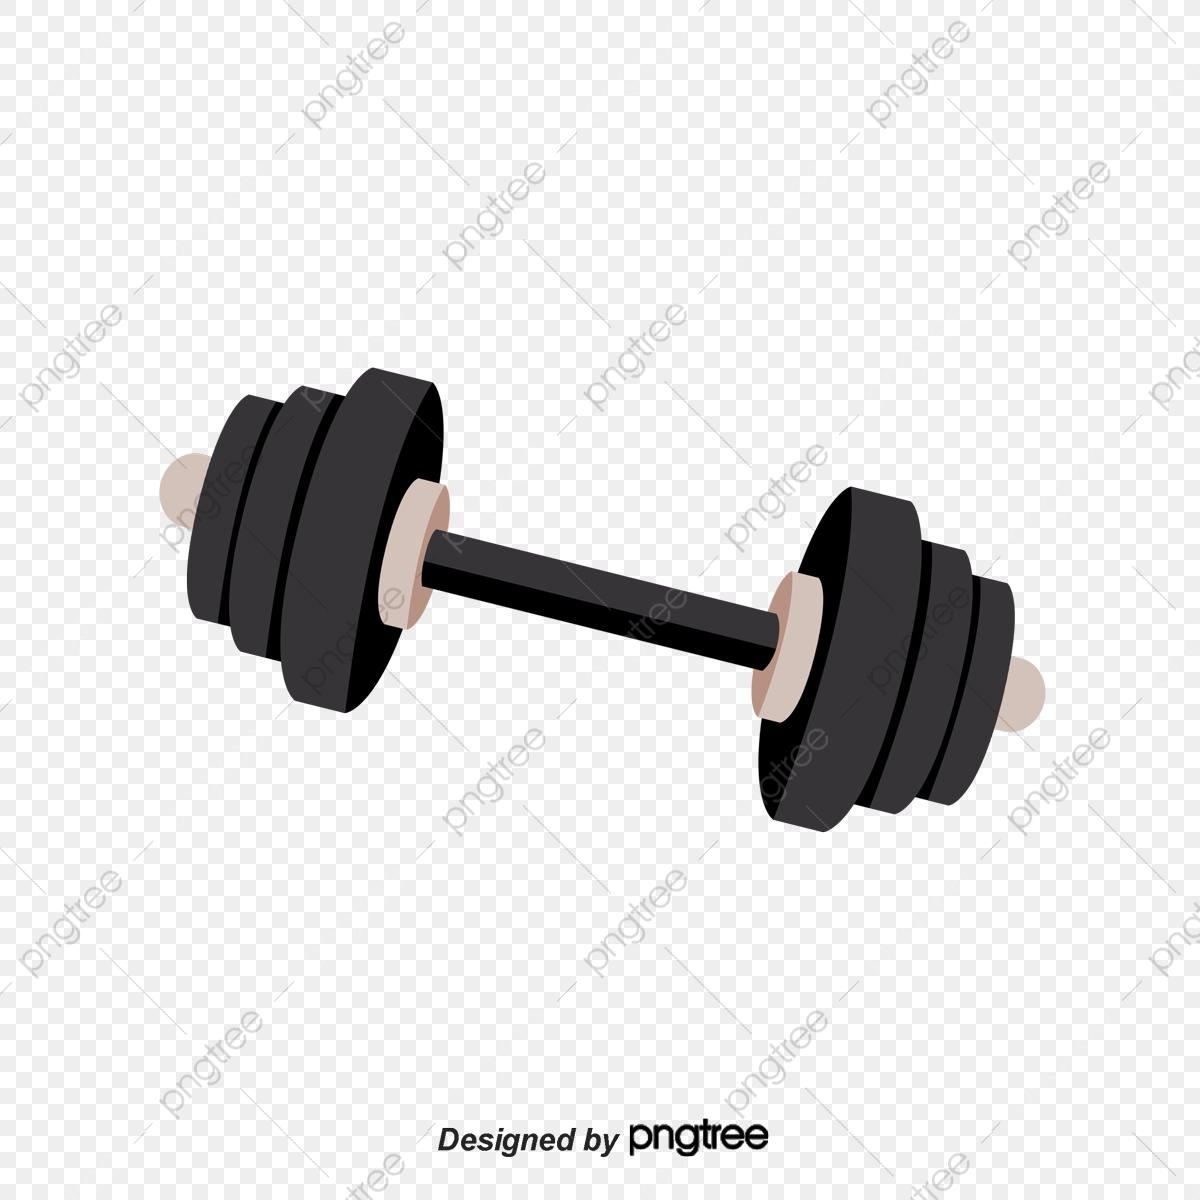 Gym Vector Material, Treadmill, Dumbbell, Fitness PNG and Vector.